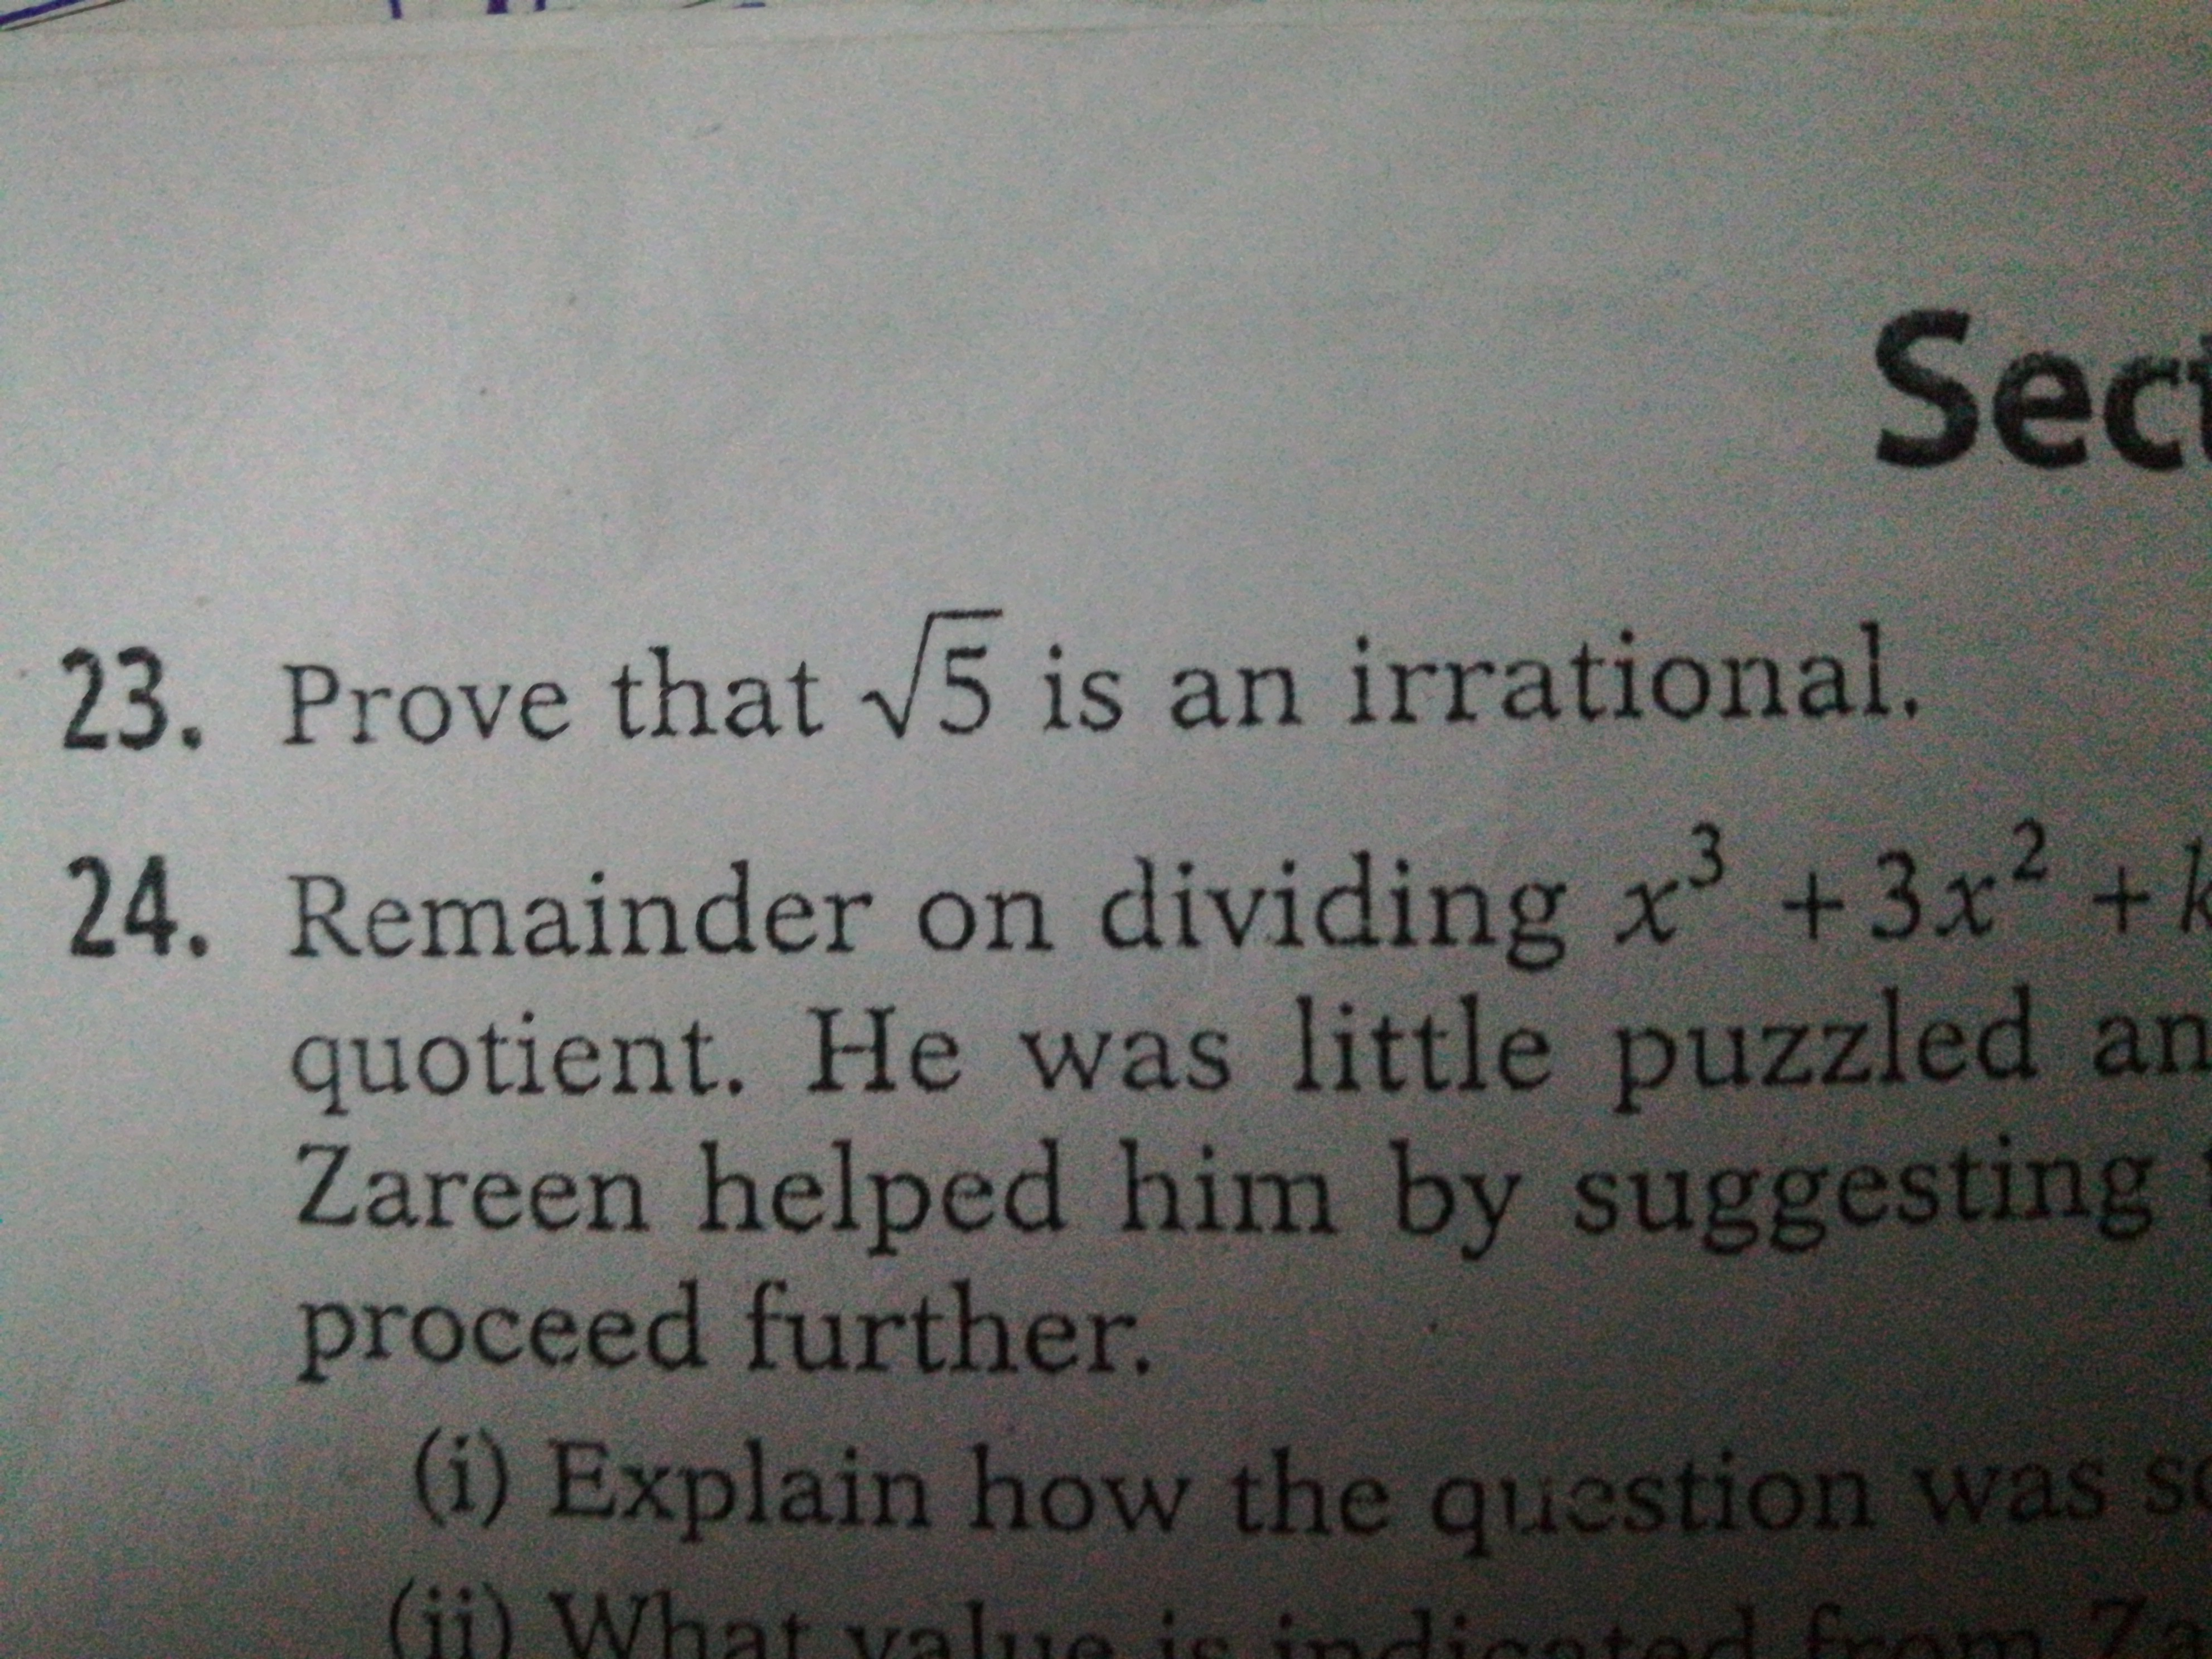 Which are the important and most repeating question in class 10 CBSE